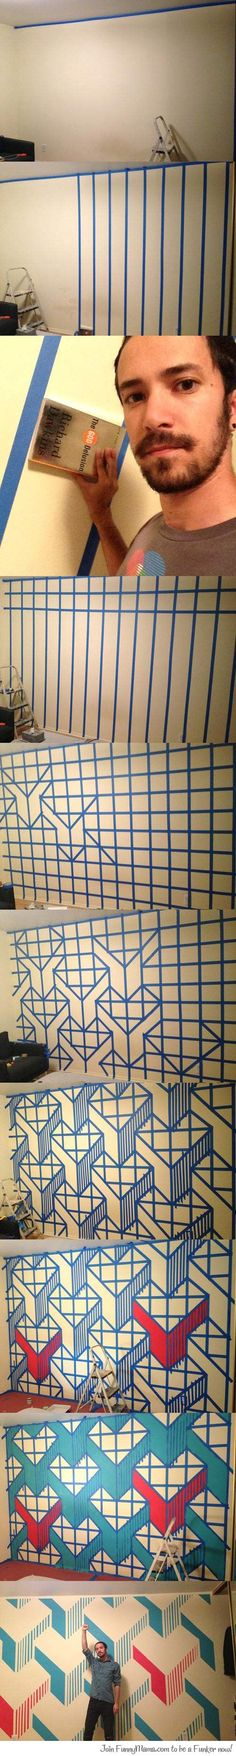 Awesome wall design...Too much time on his hands i think!!